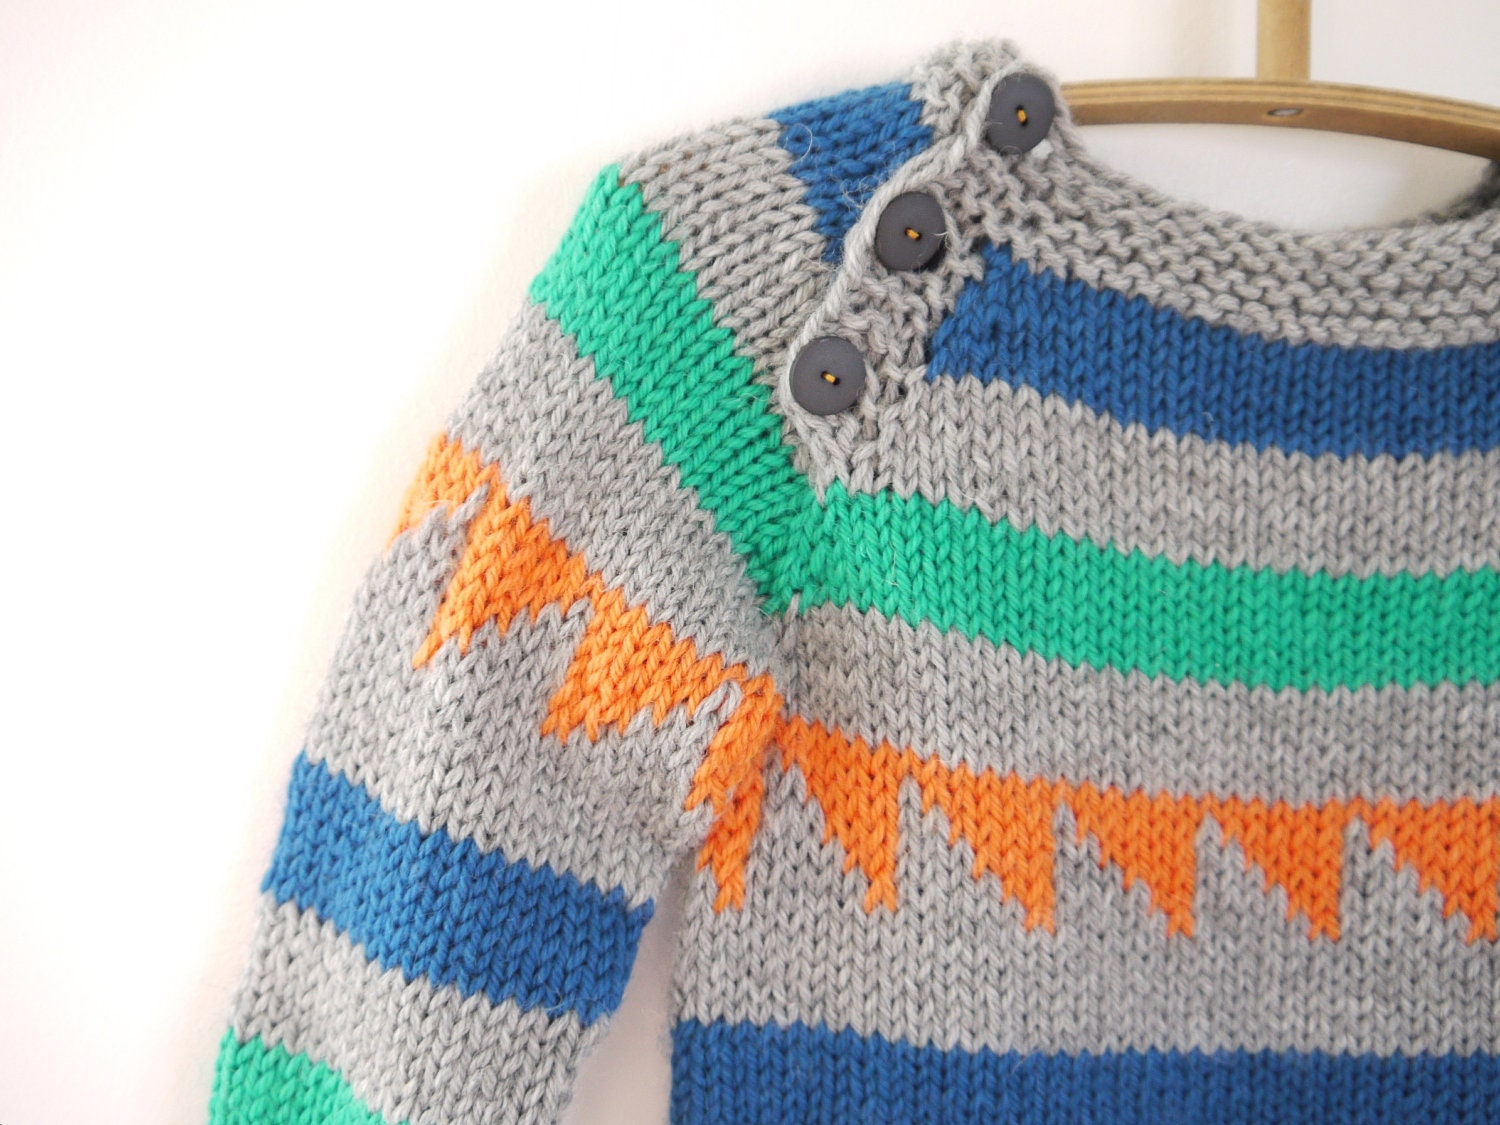 Knitting Sweater For Kids : Boys knitted sweater triangle chunky pullover fits